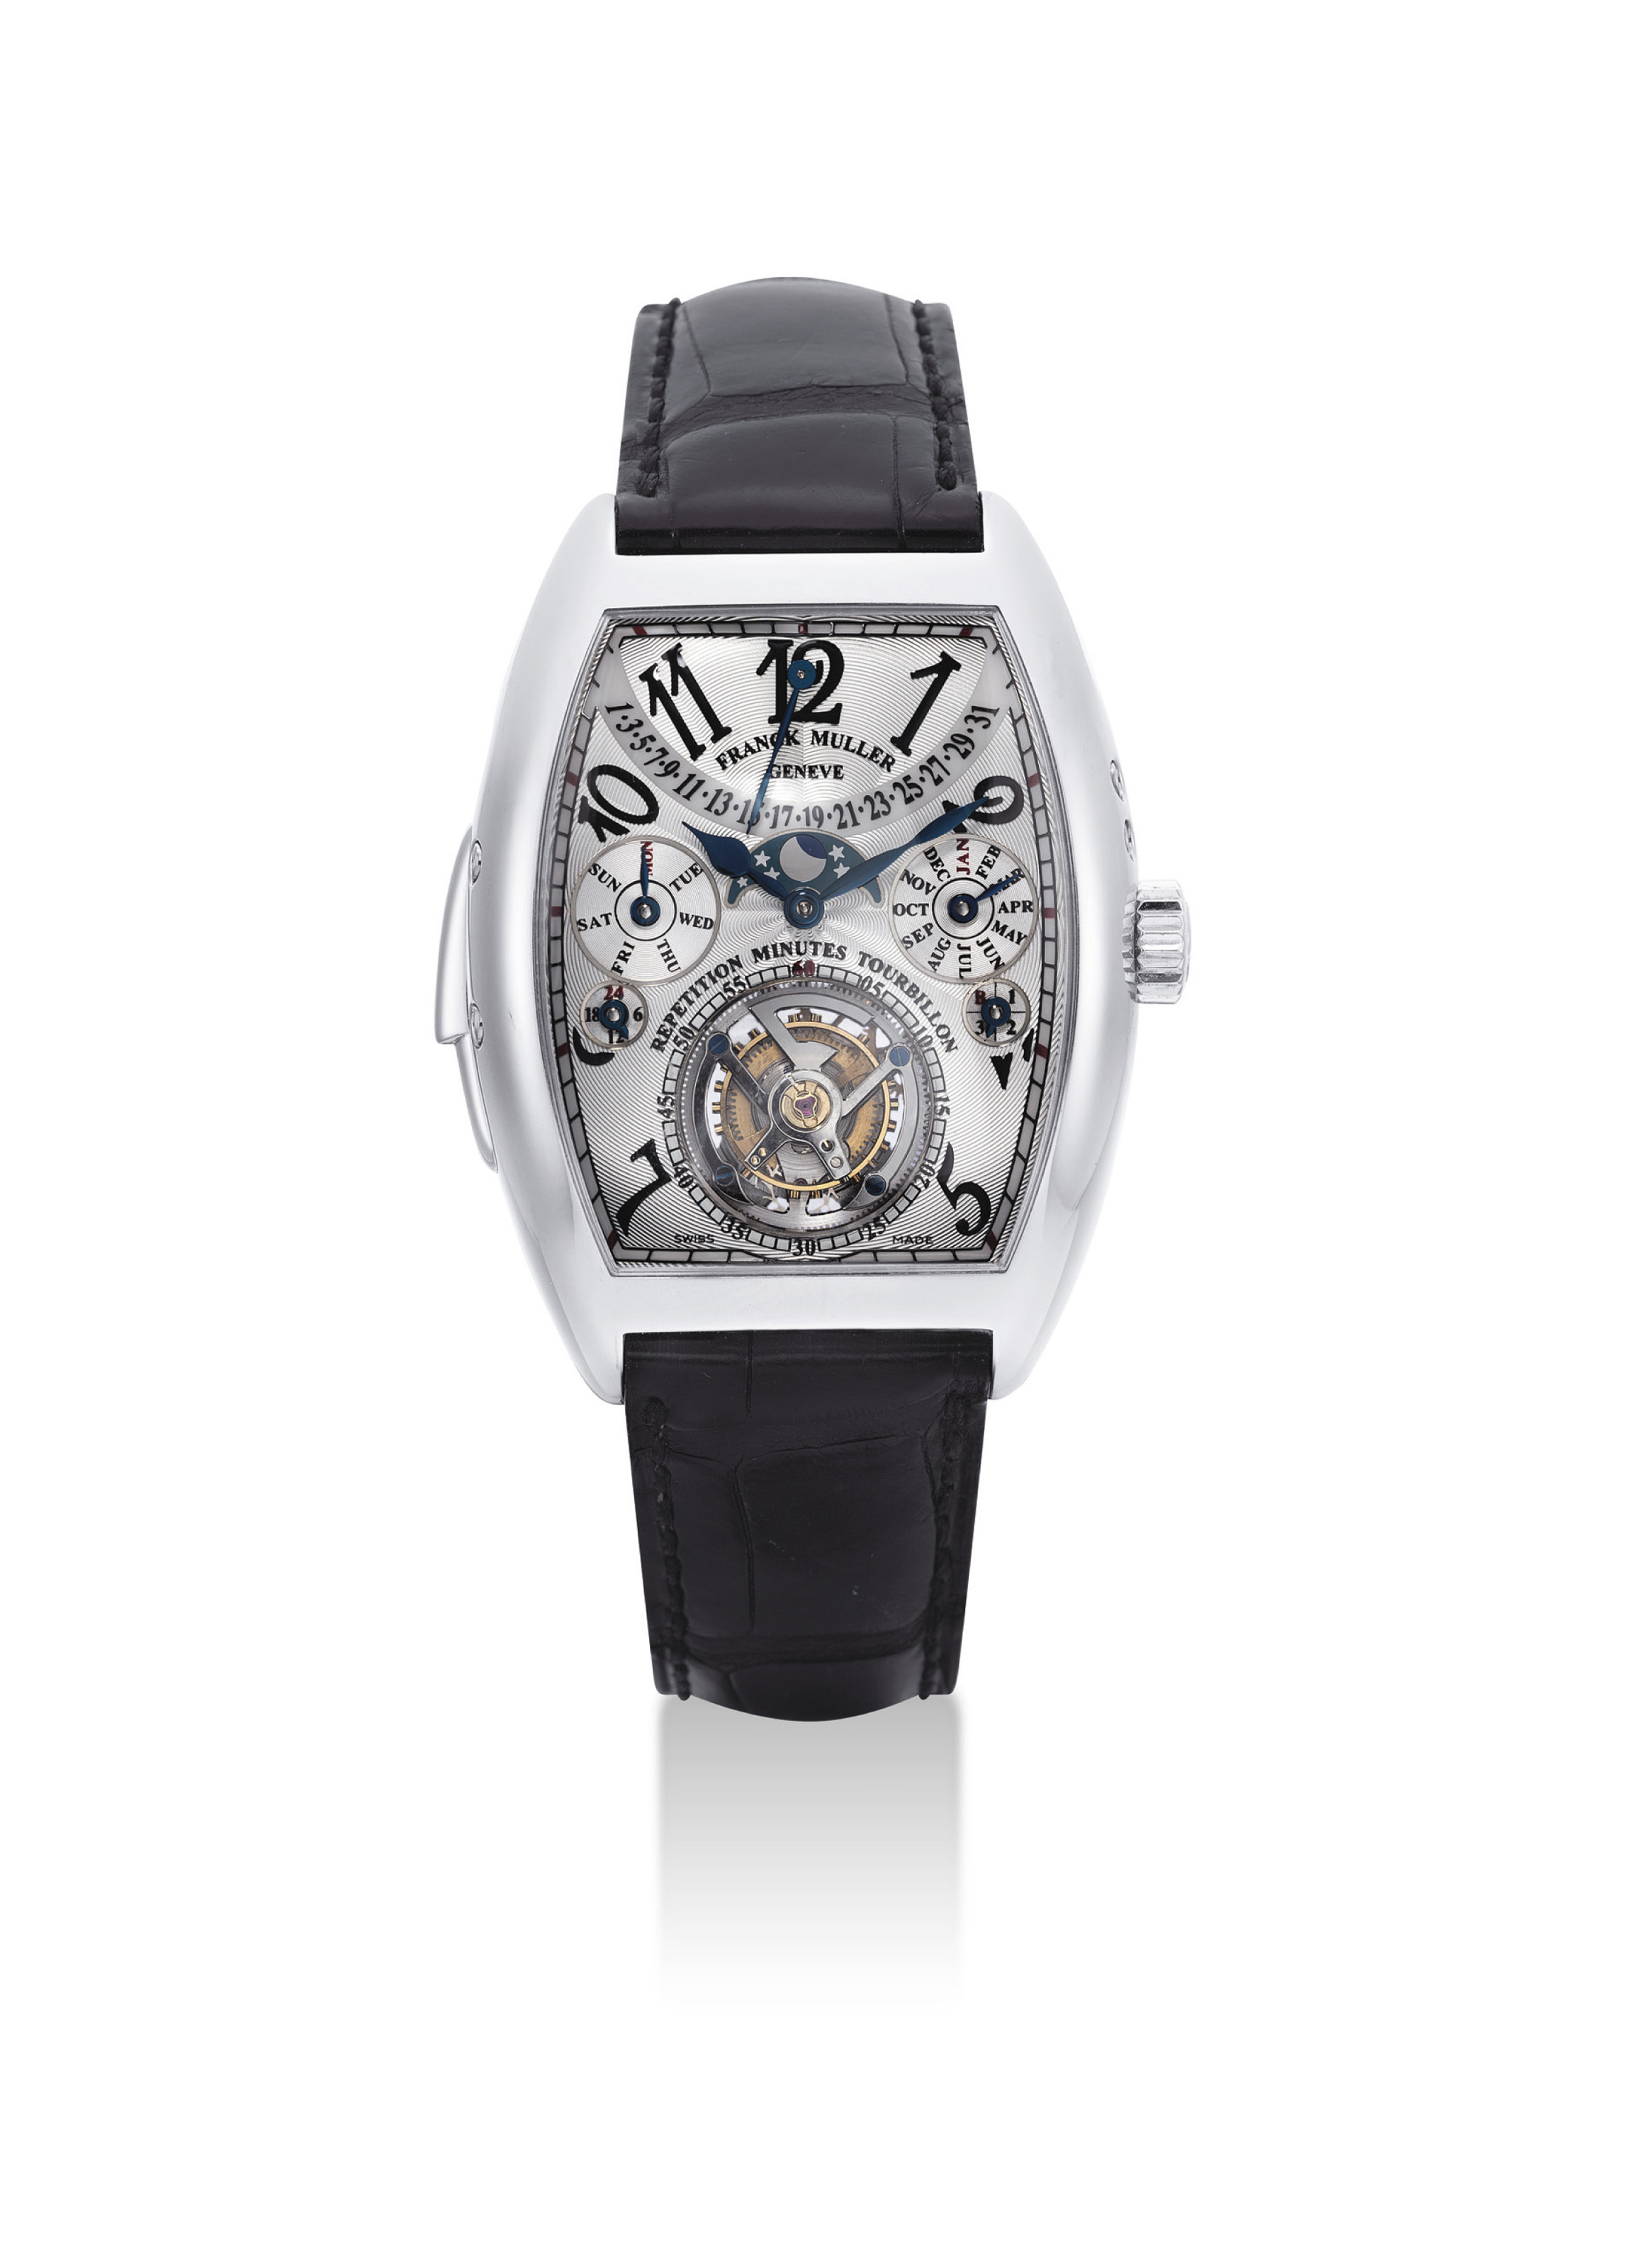 FRANCK MULLER. A VERY FINE AND RARE PLATINUM TONNEAU-SHAPED MINUTE REPEATING PERPETUAL CALENDAR TOURBILLON WRISTWATCH WITH RETROGRADE DATE, MOON PHASES, LEAP YEAR AND 24 HOUR INDICATION